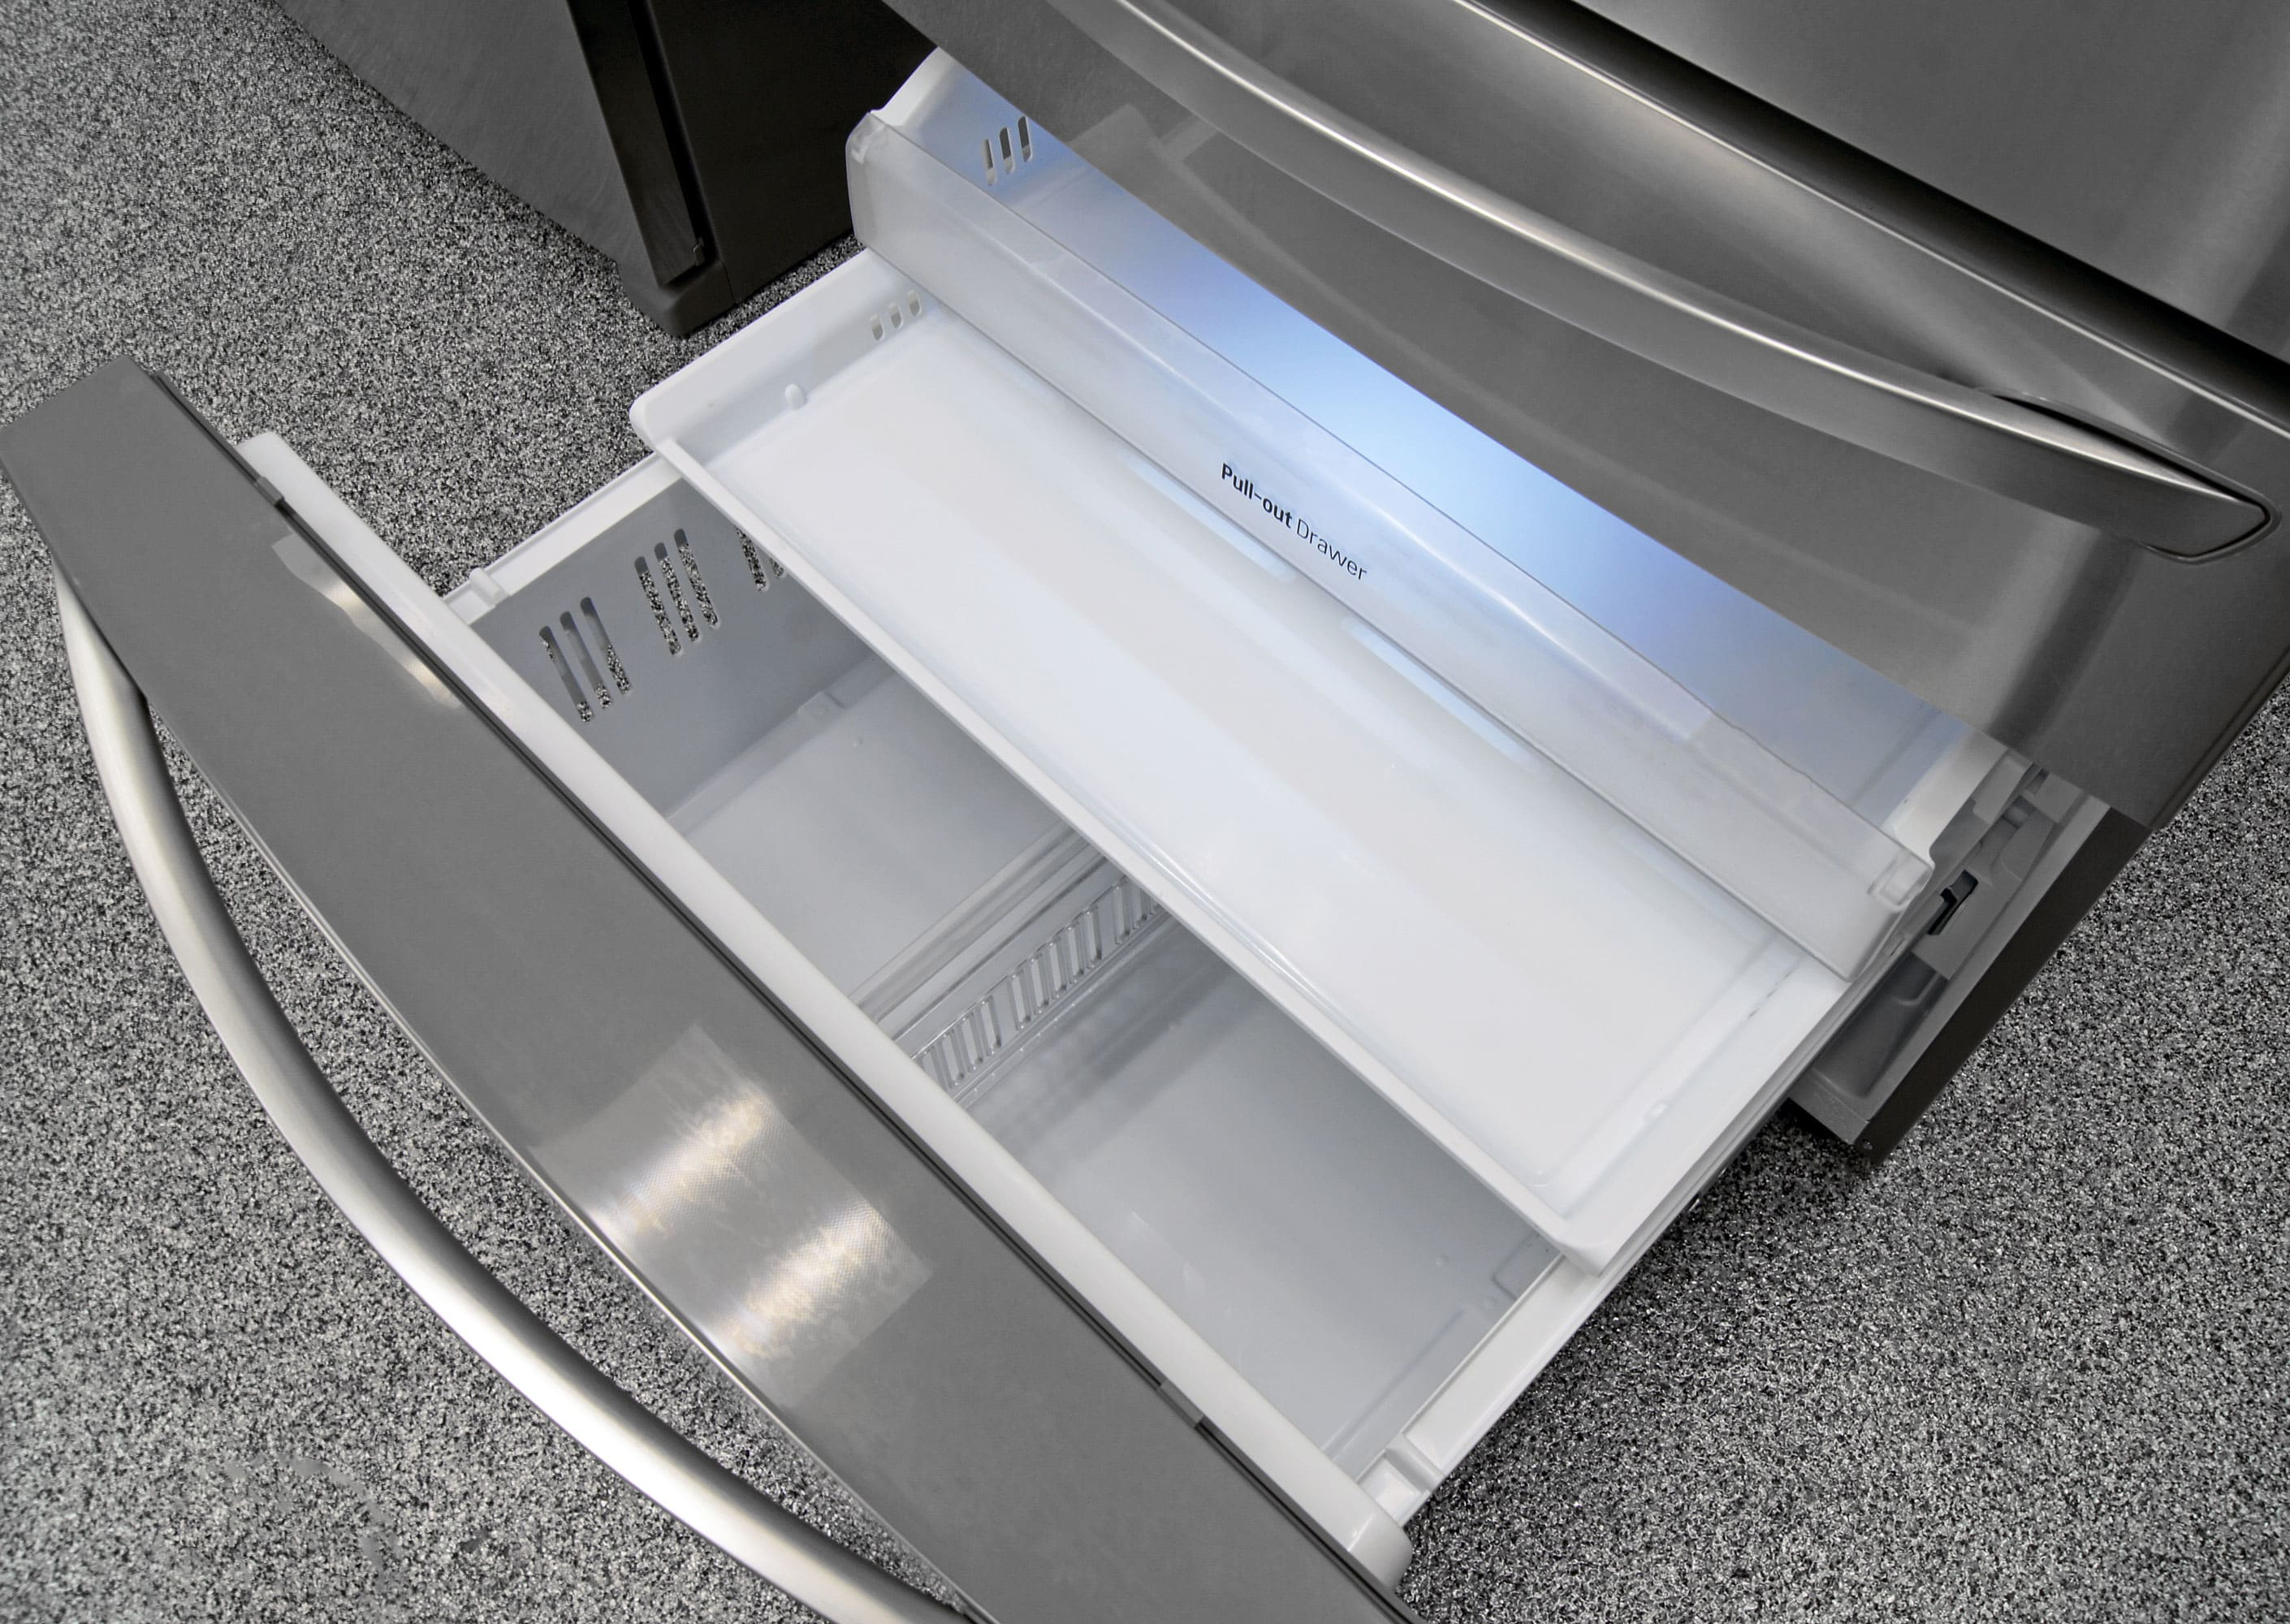 Three drawers give you assorted storage options in the LG LMXS30776S's freezer.